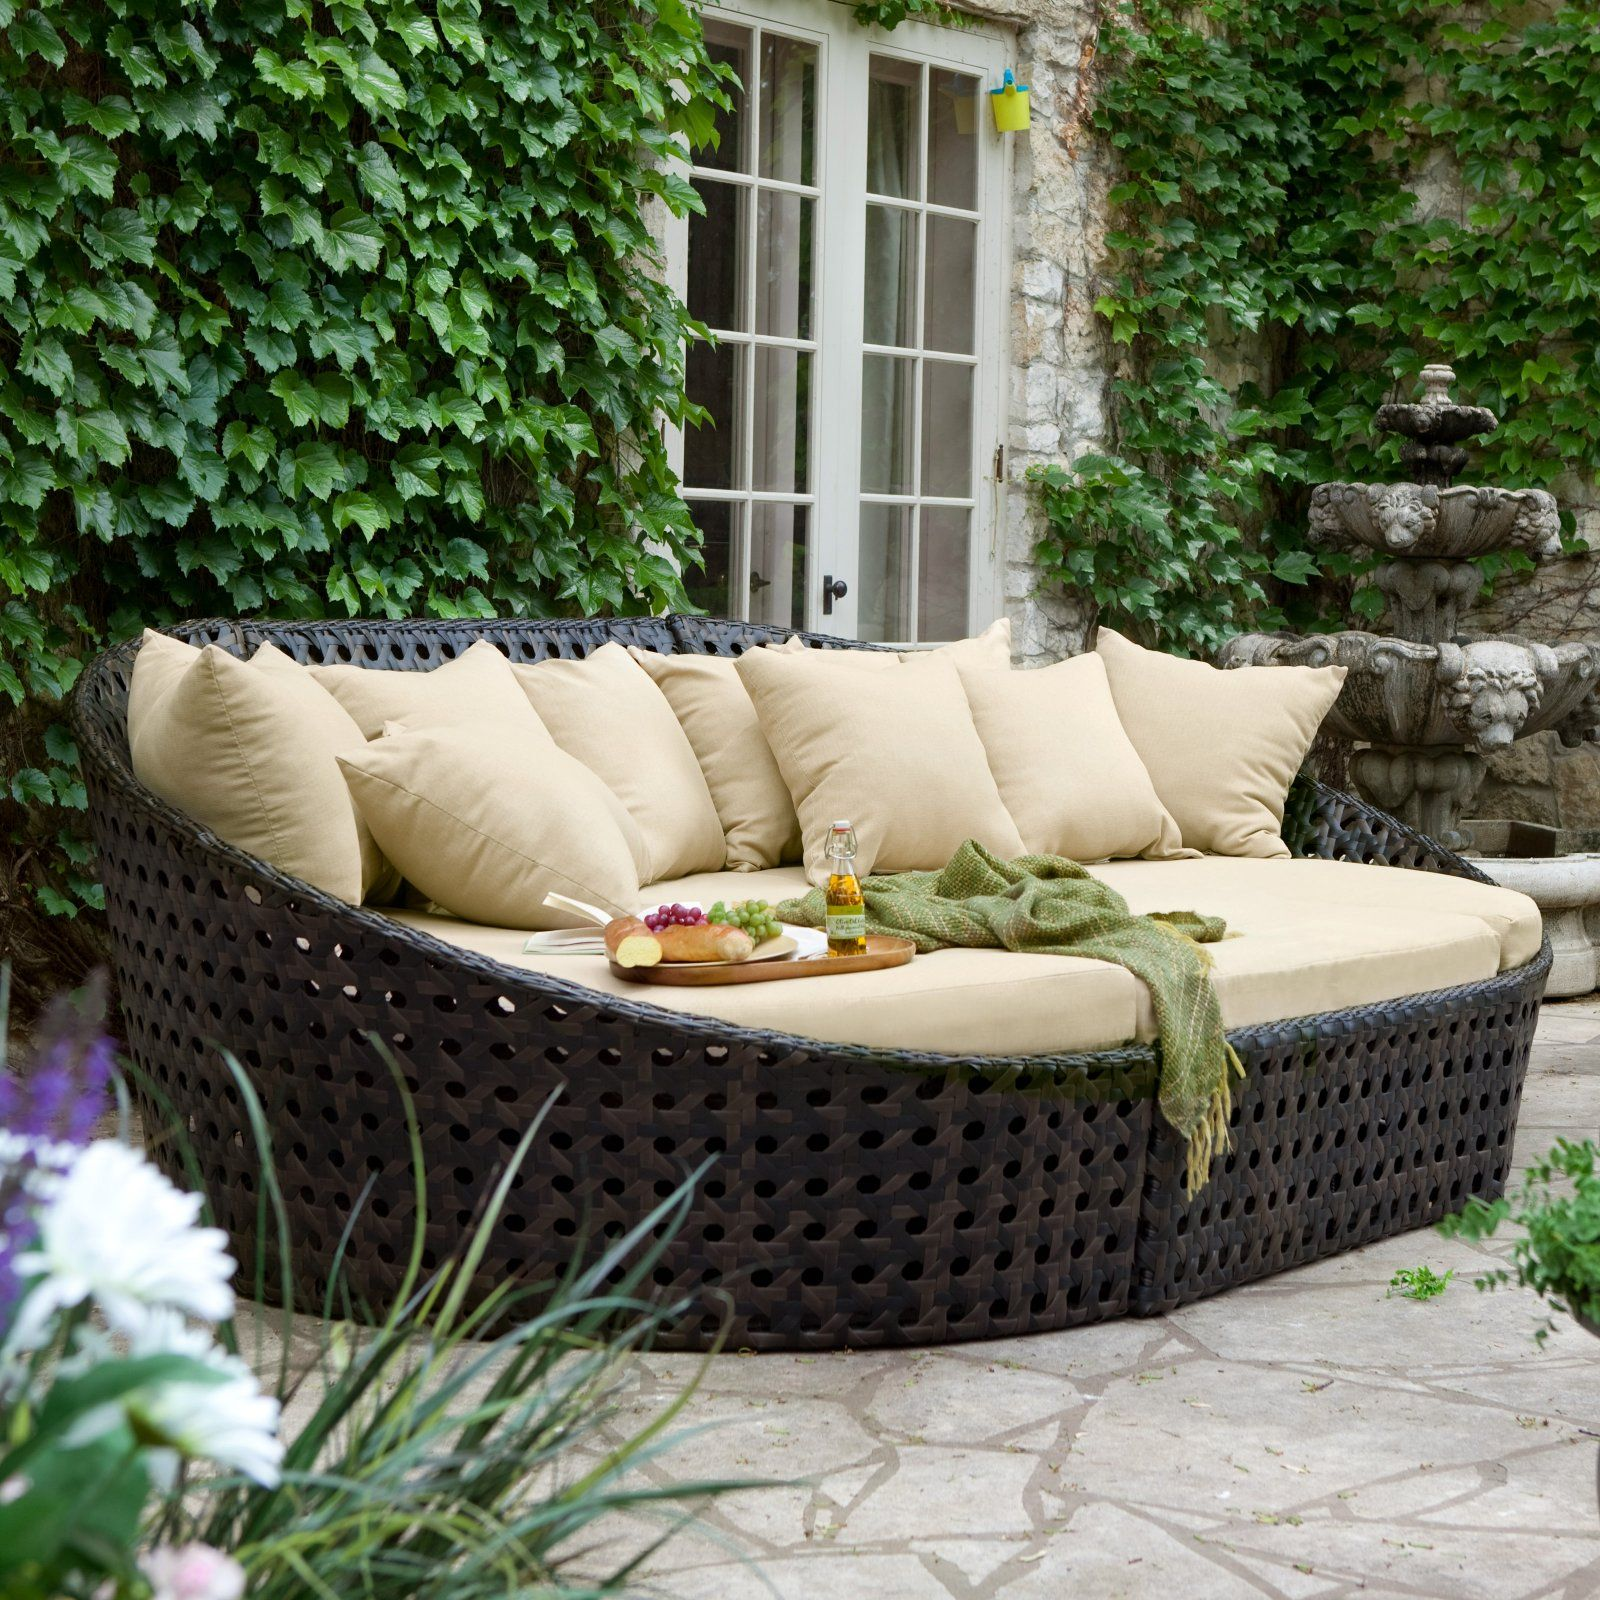 Madrid All Weather Wicker Oversized Sectional Daybed & Madrid All Weather Wicker Oversized Sectional Daybed | outdoor ...